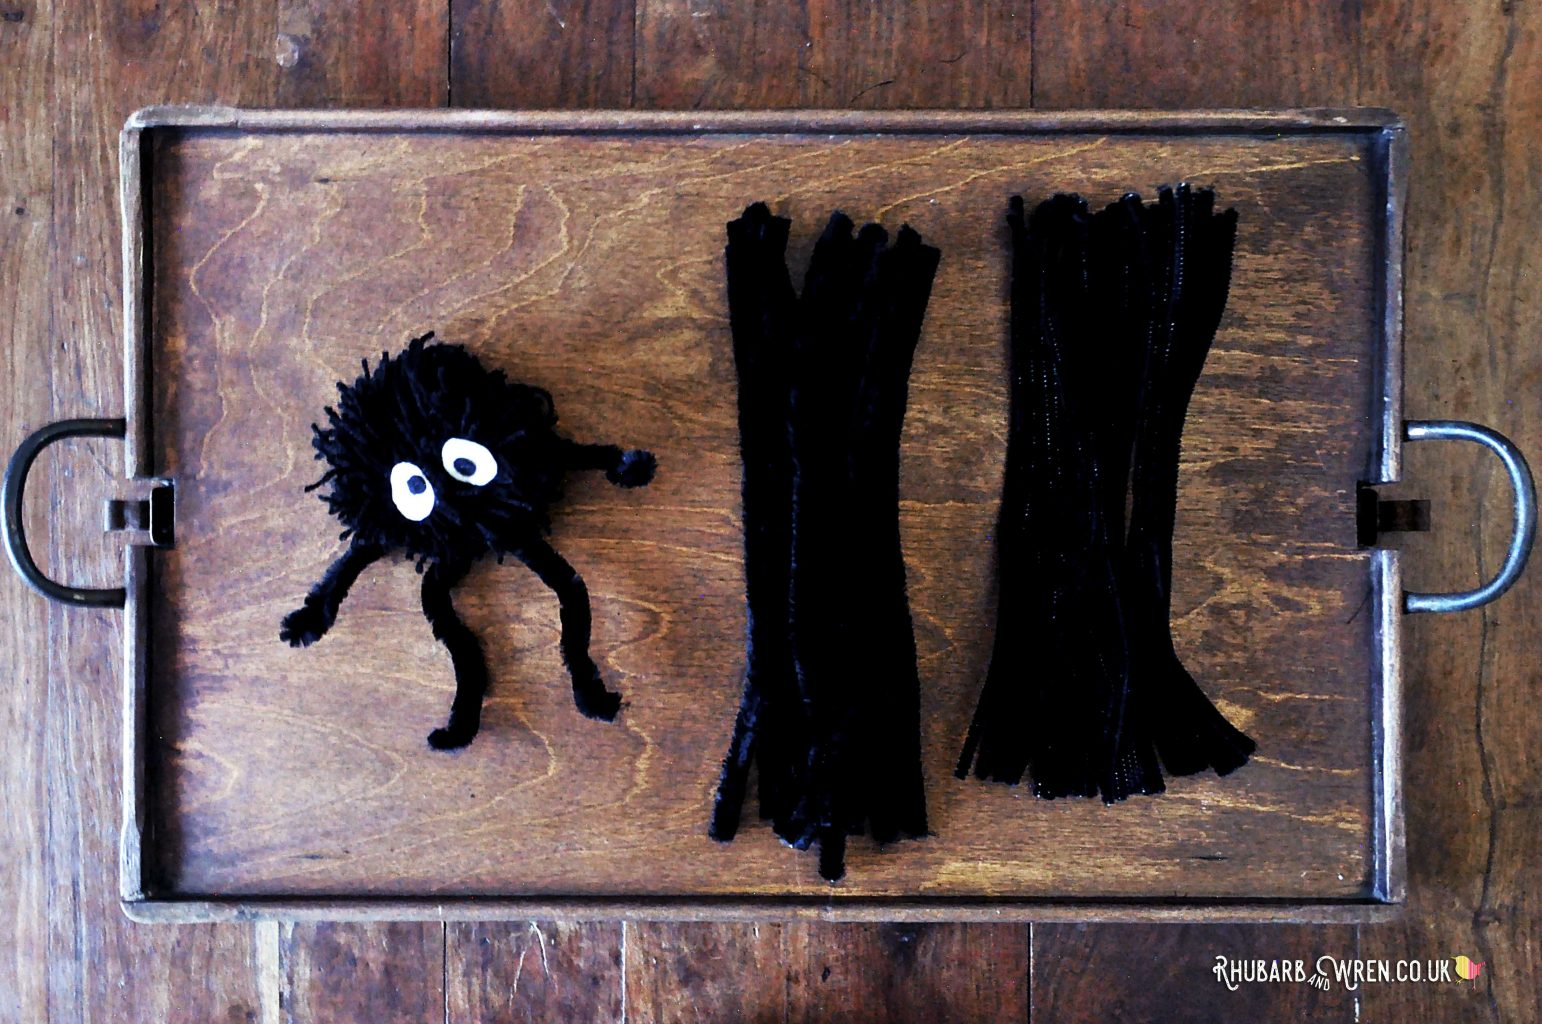 A pompom with pipecleaners for arms and legs.